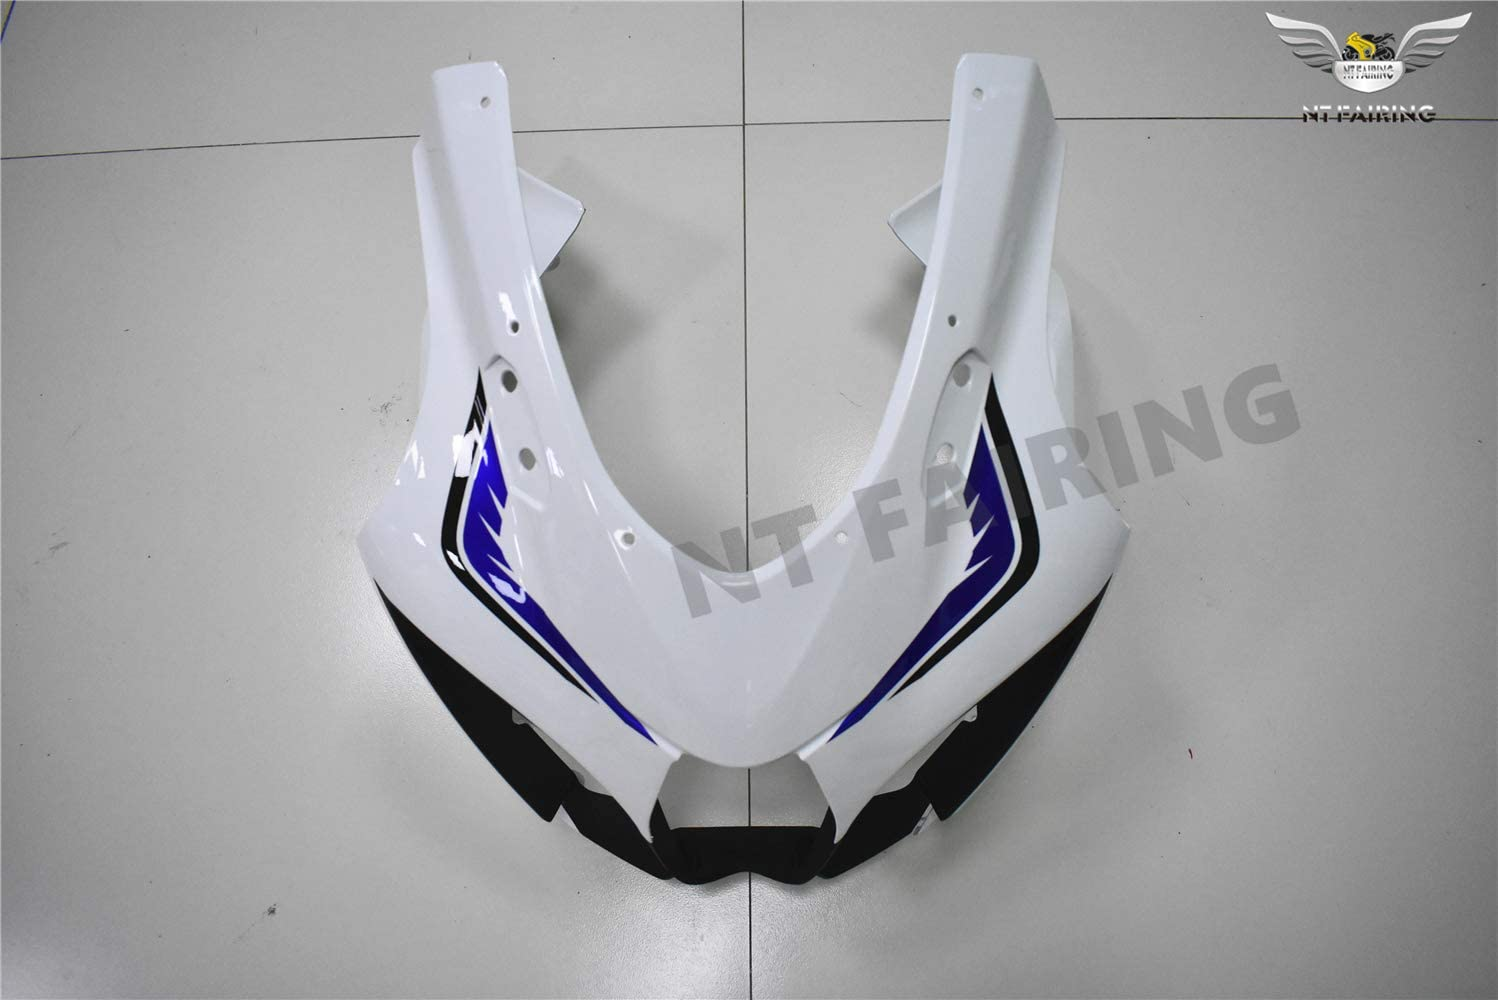 NT White Fairing Fit for SUZUKI 2017-2020 GSXR 1000 Injection Mold ABS Plastics Aftermarket Bodywork Bodyframe GSX-R 2018 2019 A002